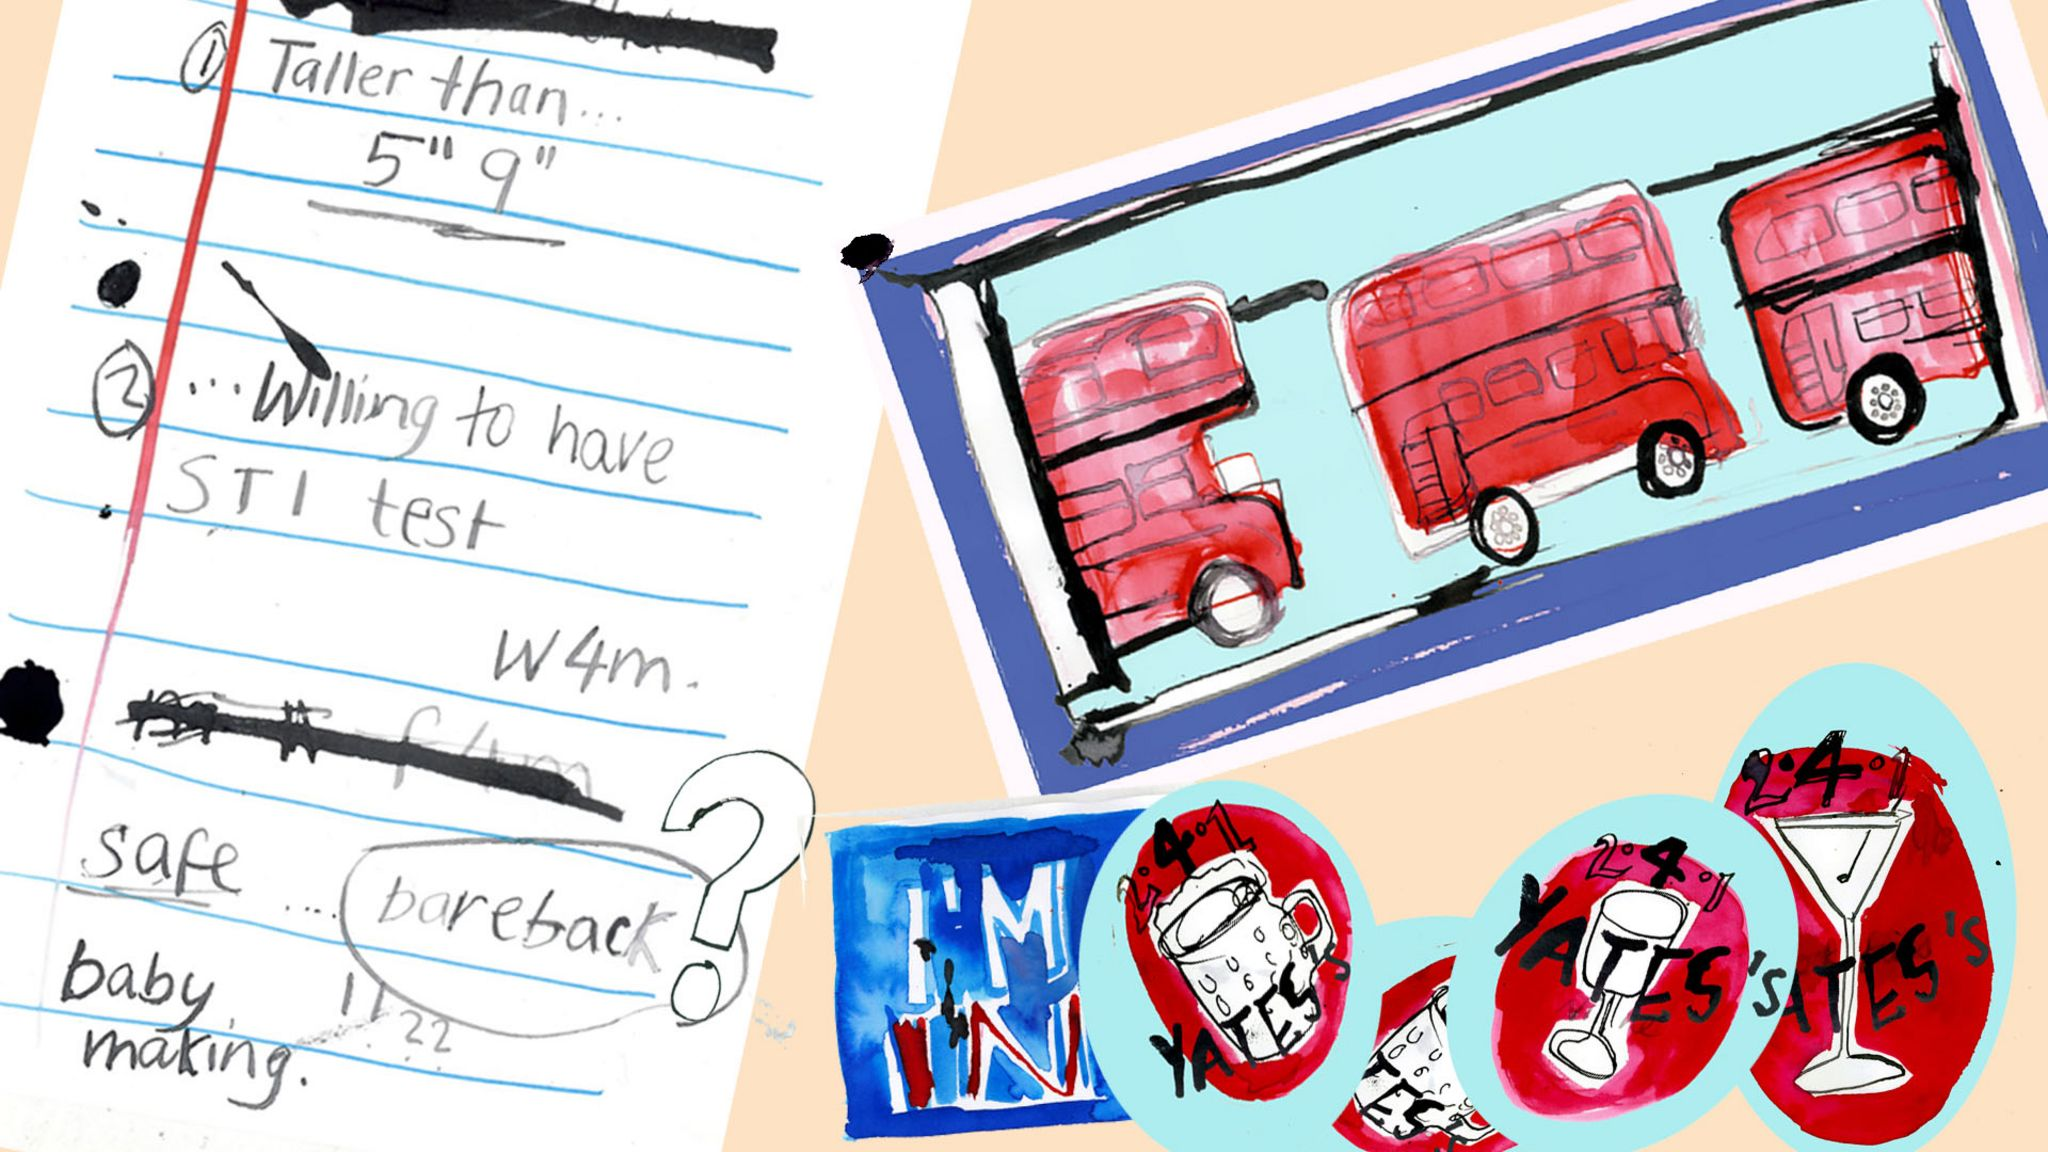 Noticeboard: Craigslist advertisement note, pictures of double-decker bus